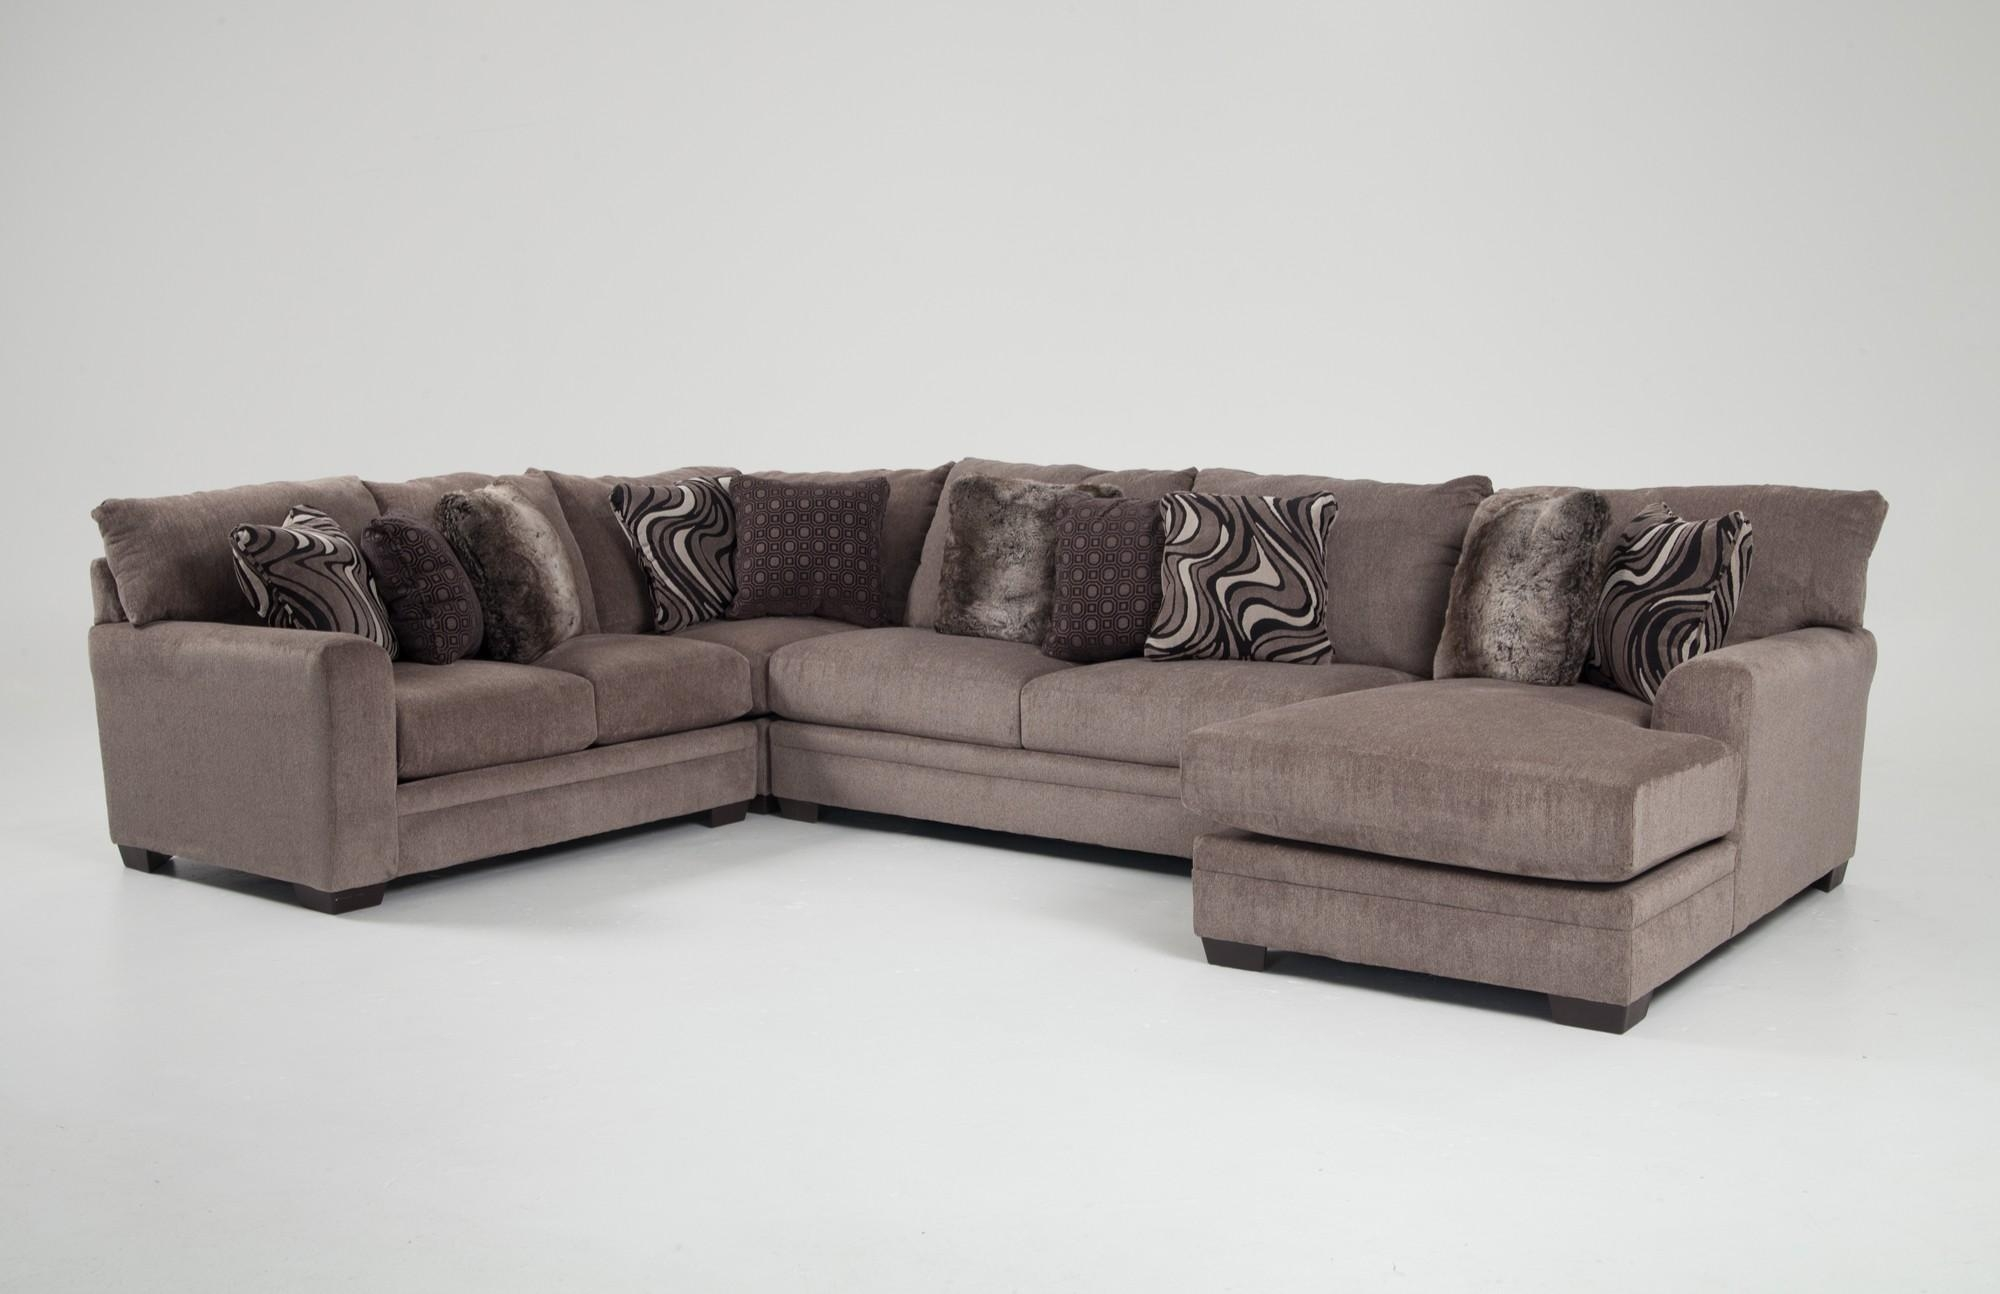 Sofas Center : Bobure Sofa Outstanding Photos Concept 20032518 Regarding Luxe Sofas (Image 12 of 20)